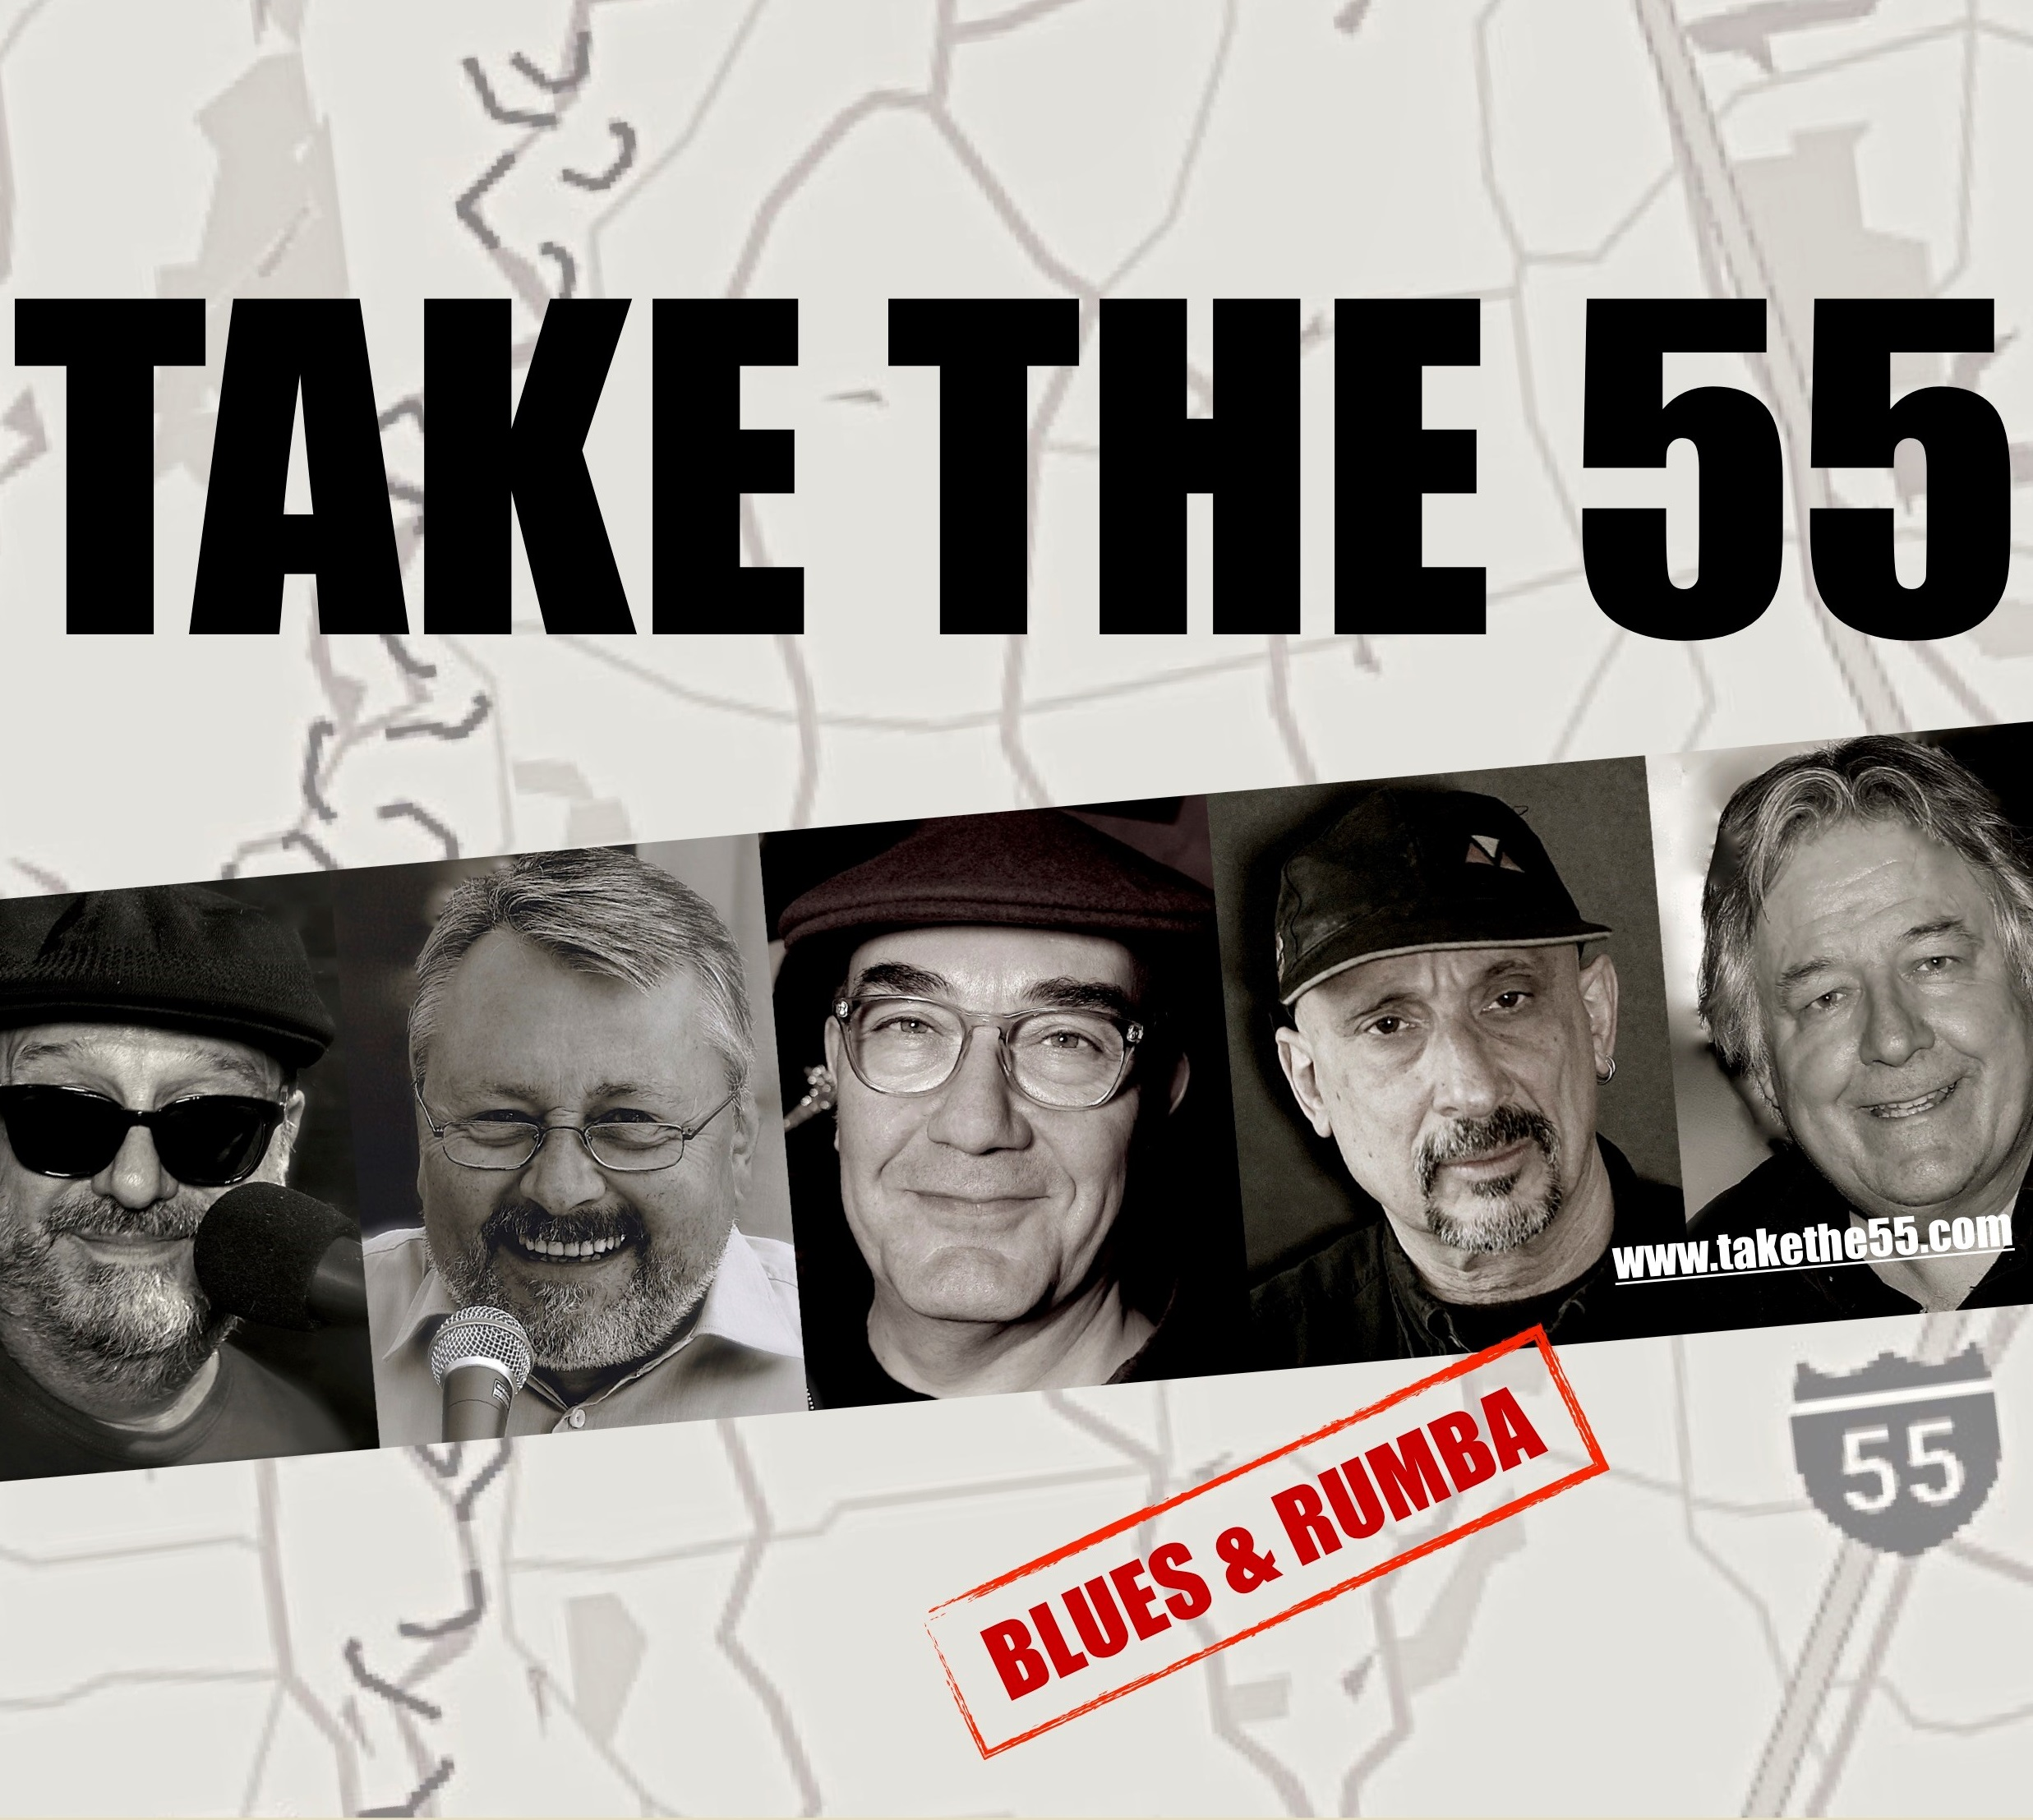 TAKE THE 55 - LIVE KONZERT